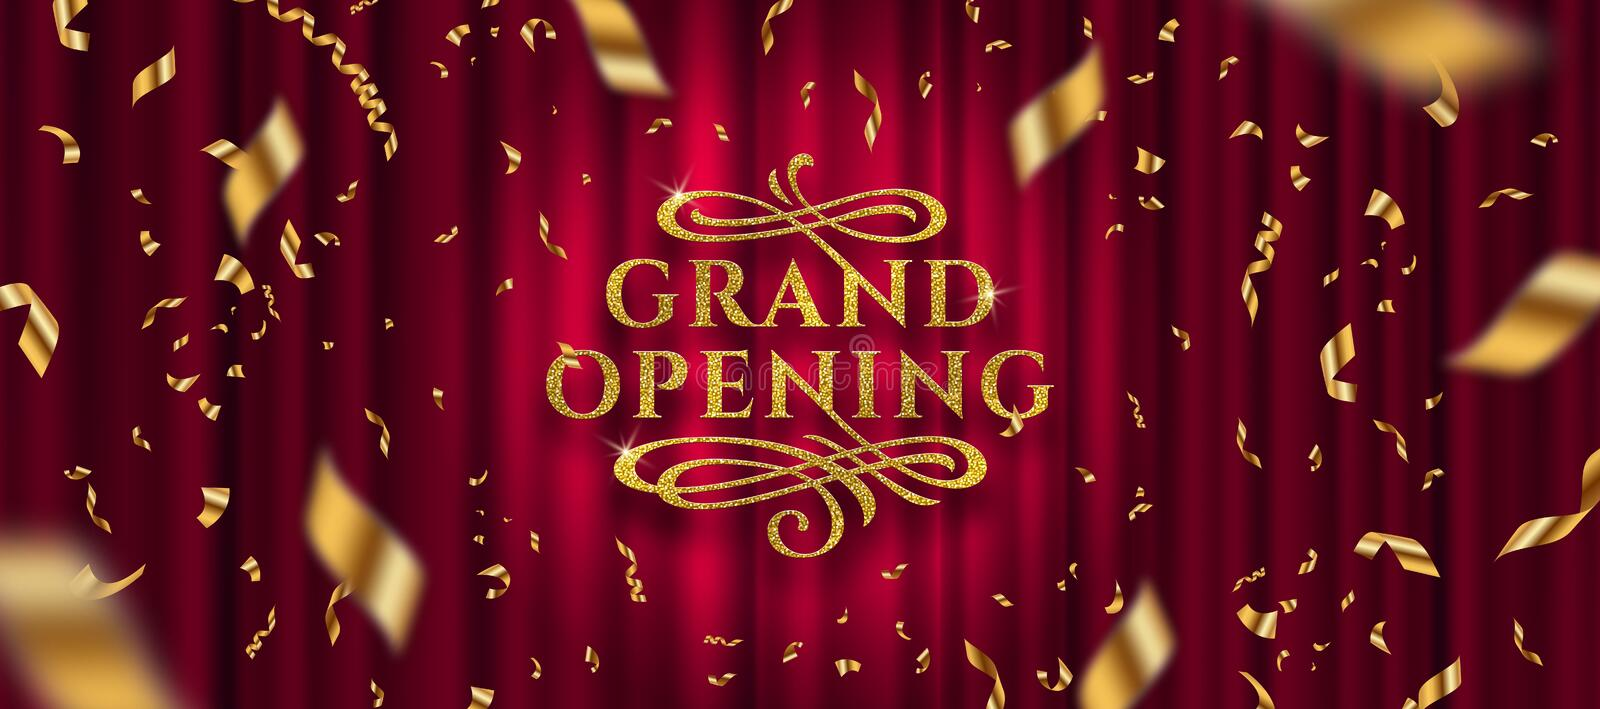 Grand opening logo. Golden foil confetti and glitter gold logo with flourishes ornamental elements on a red curtain background. Vector illustration royalty free illustration